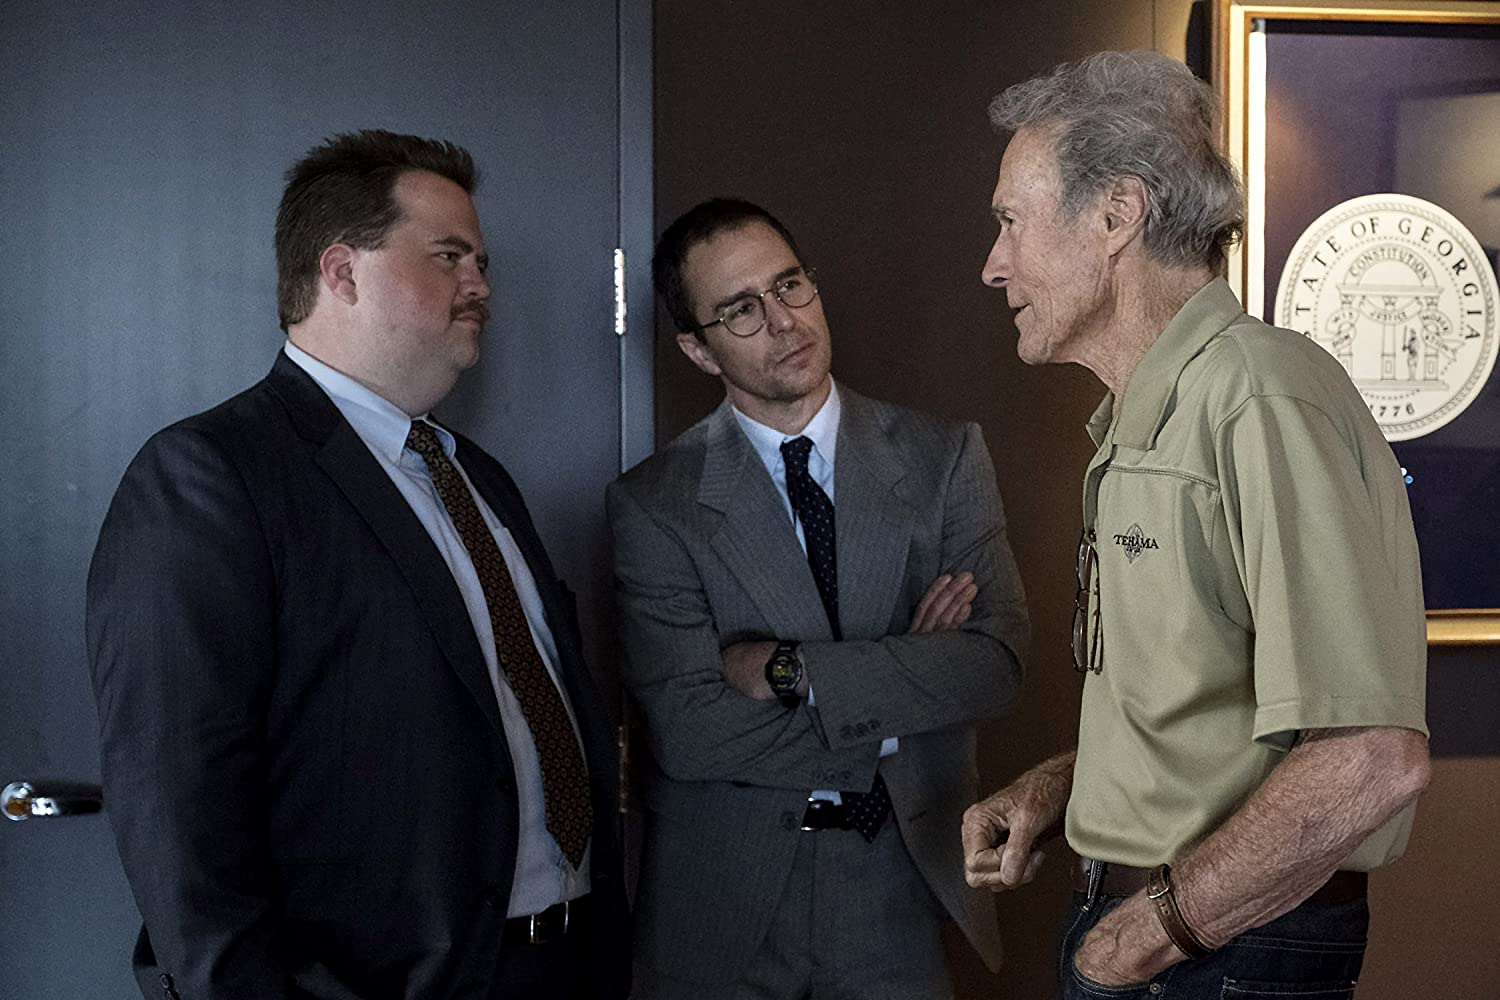 Clint Eastwood, Sam Rockwell, and Paul Walter Hauser in Richard Jewell (2019)